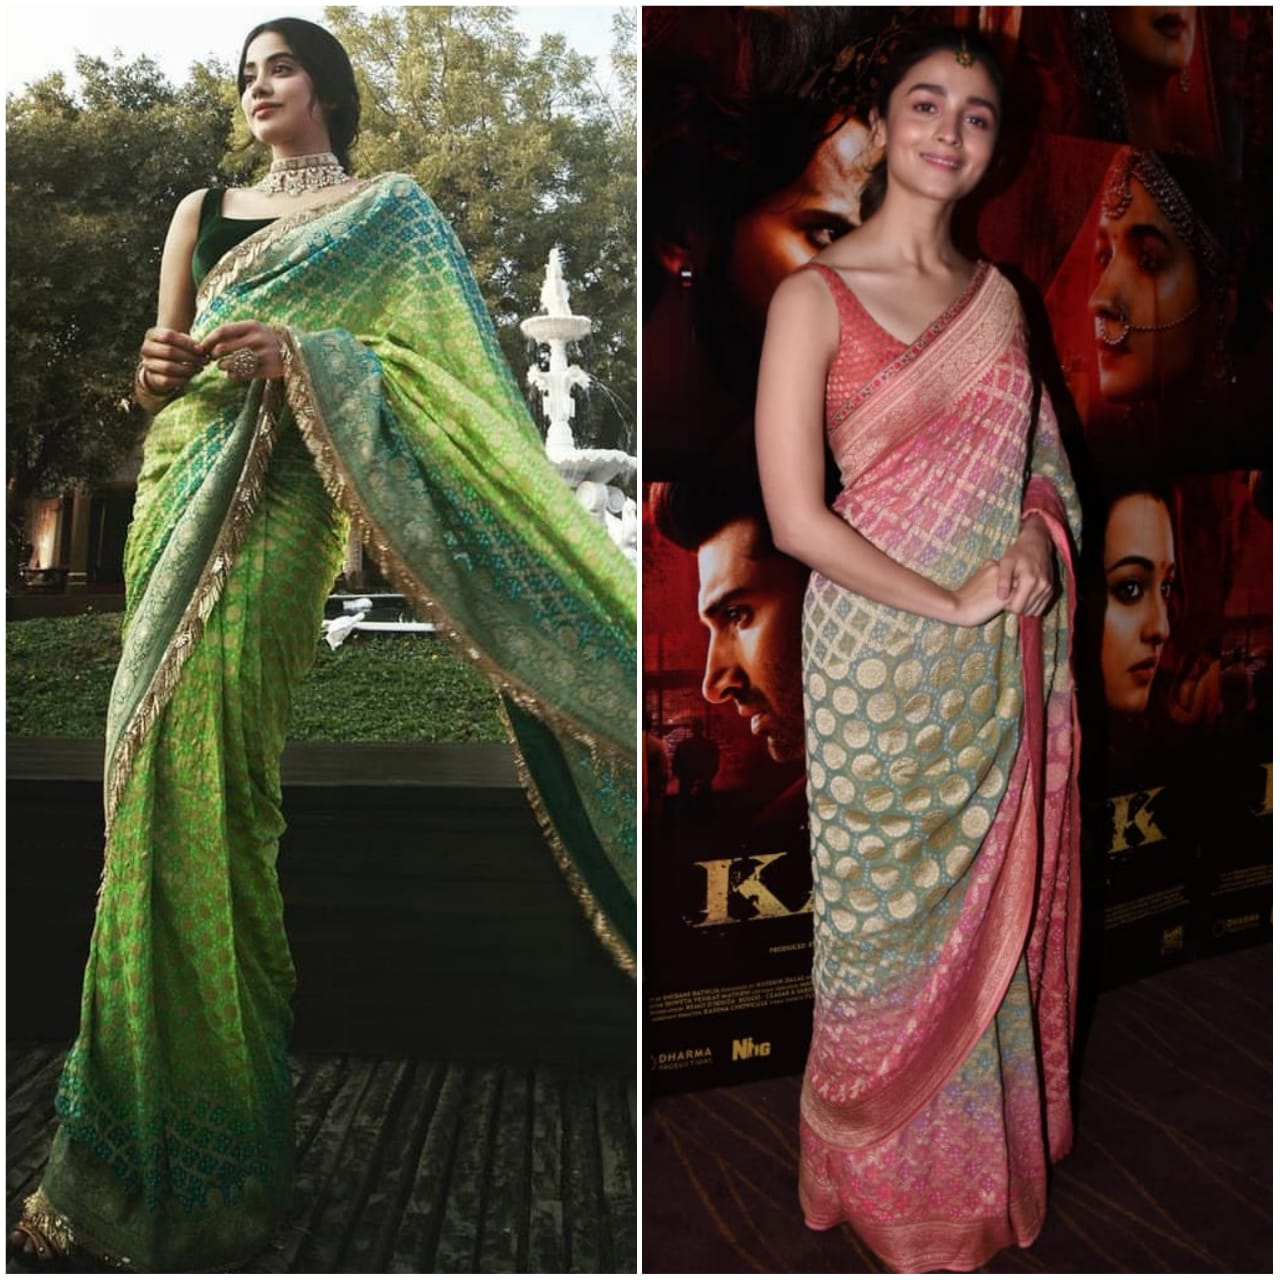 Be a Trendsetter like Alia Bhatt and Janhvi Kapoor to rock the six yards this Summer